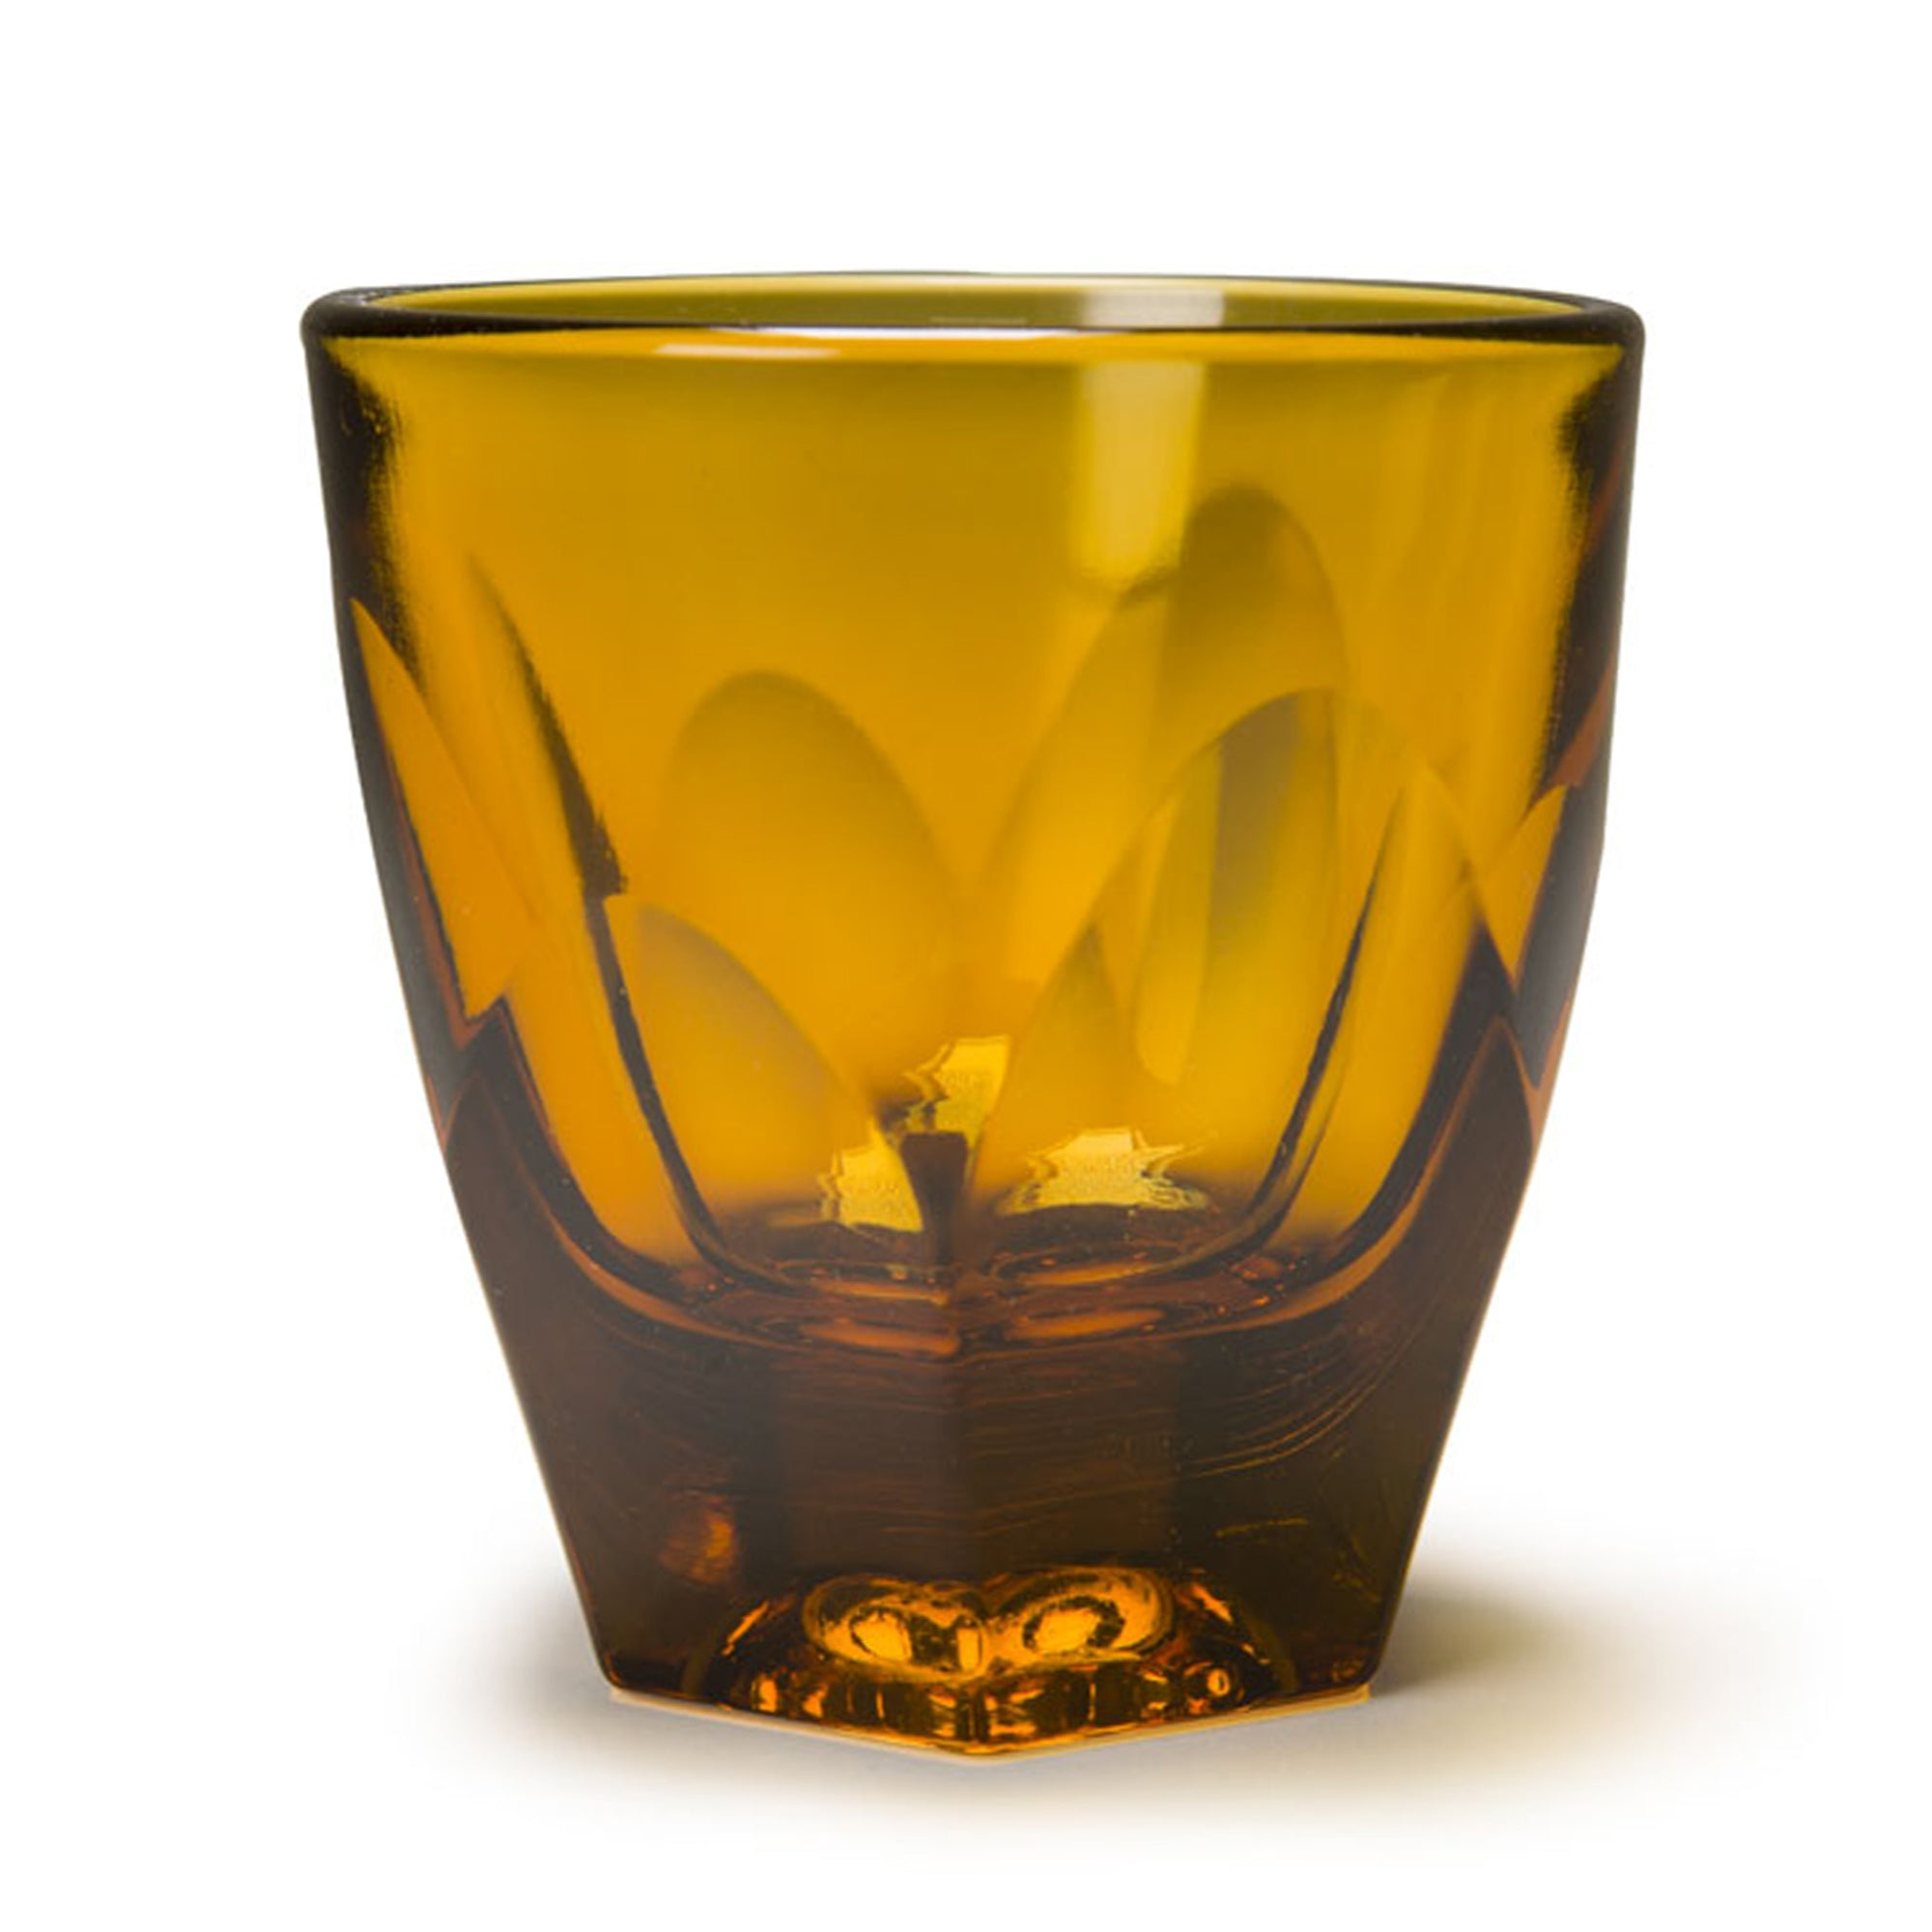 NN Vero Cappuccino Glass  - Amber 177ml - Espresso Gear